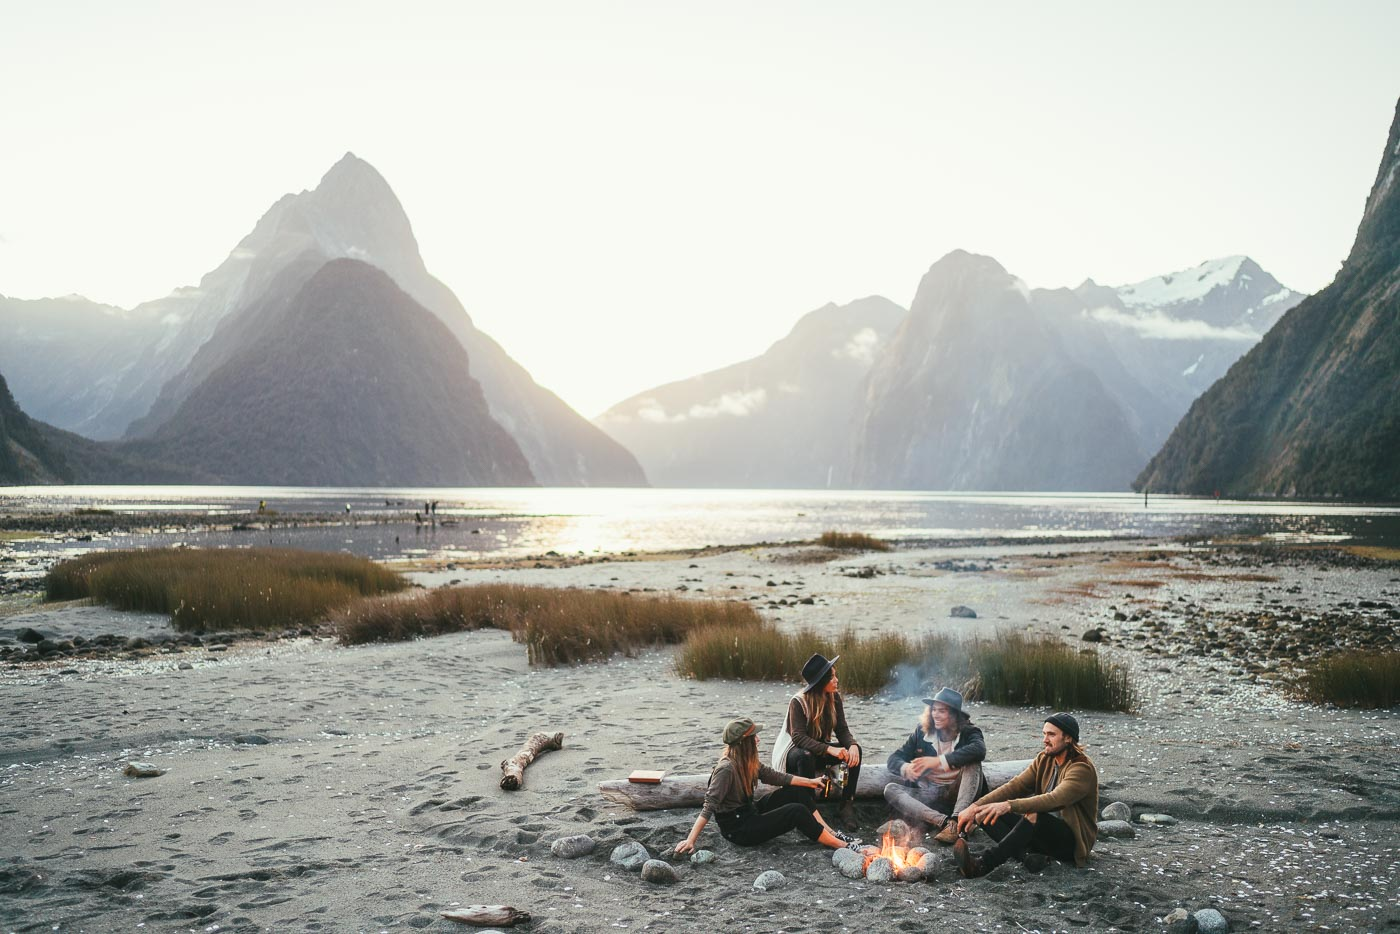 Friends having a campfire at Milford Sound, New Zealand